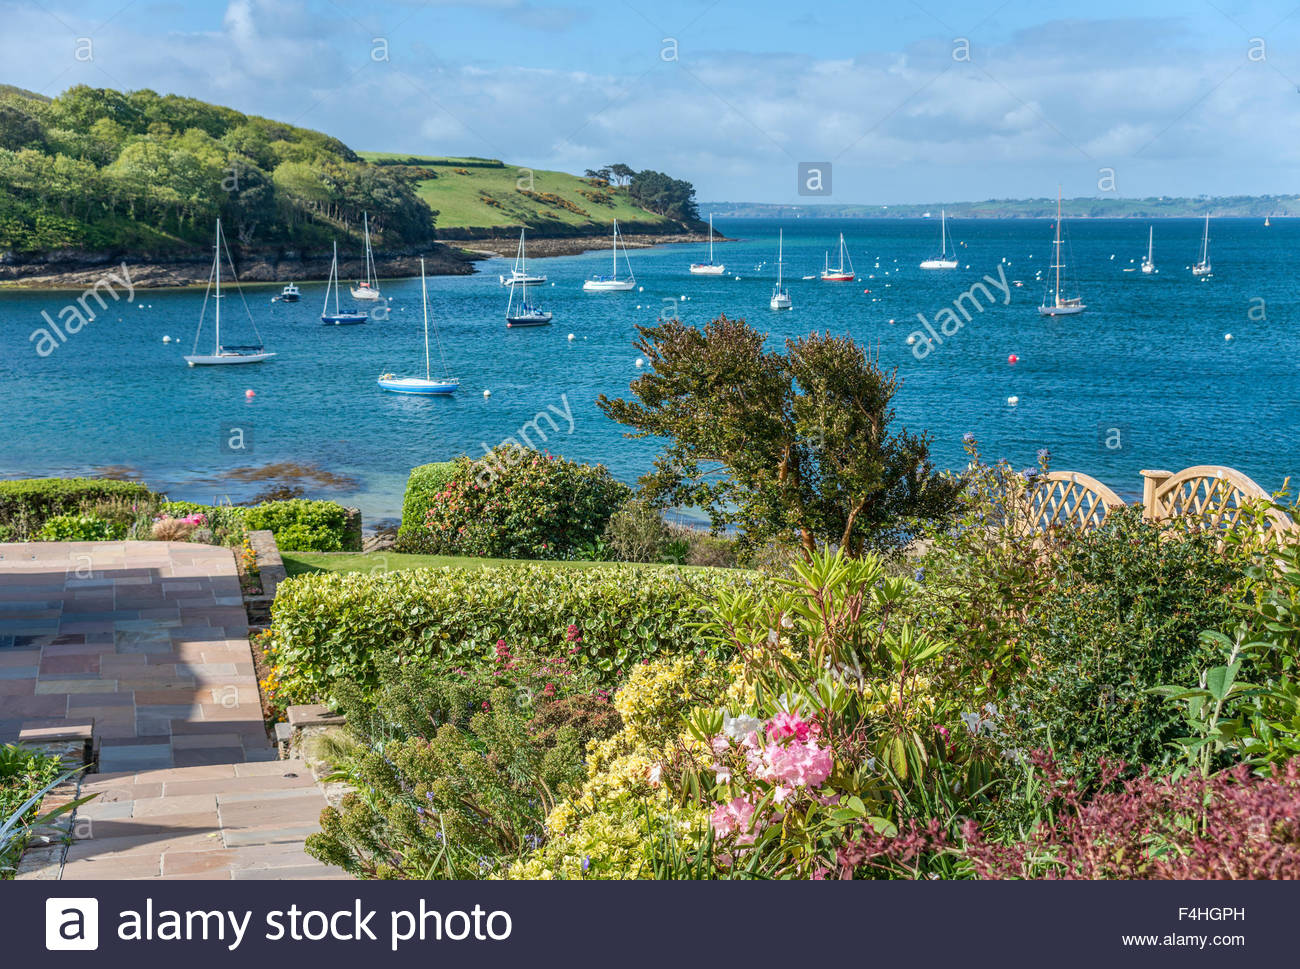 View over a garden at the scenic coastline near the village St.Mawes at the Cornish Coast near Falmouth, Cornwall, - Stock Image